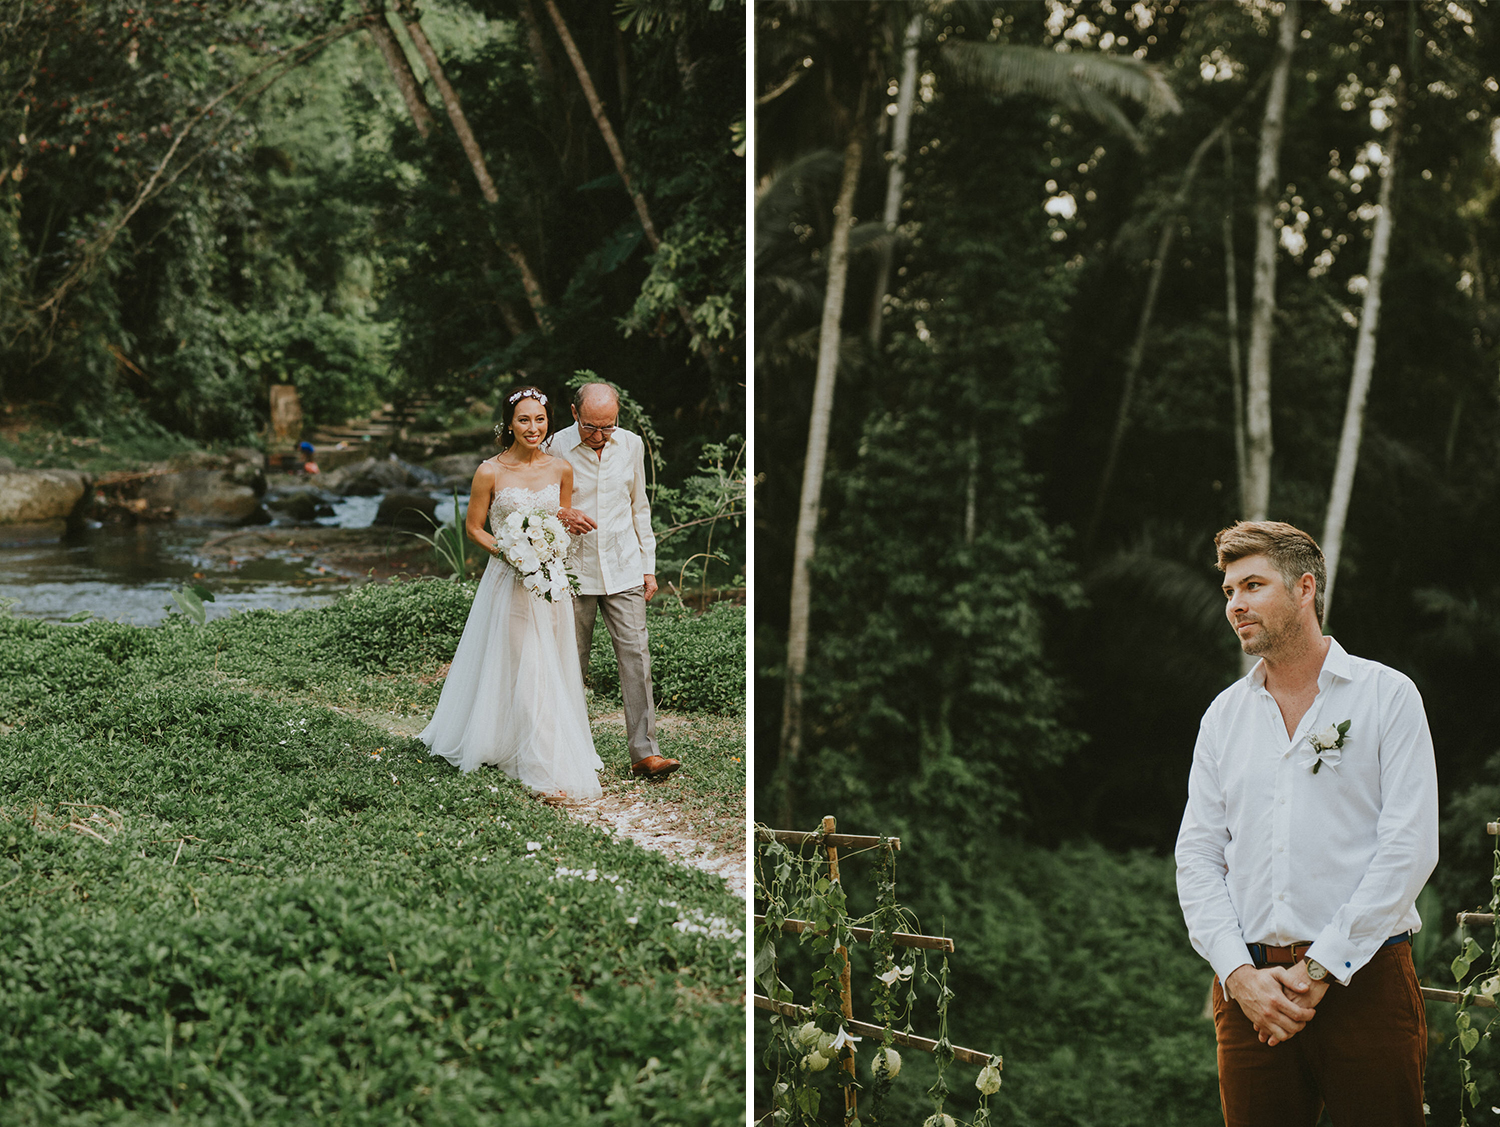 bali-wedding-ubud-wedding-wedding-destination-diktatphotography-kadek-artayasa-elaine-and-glenn-060